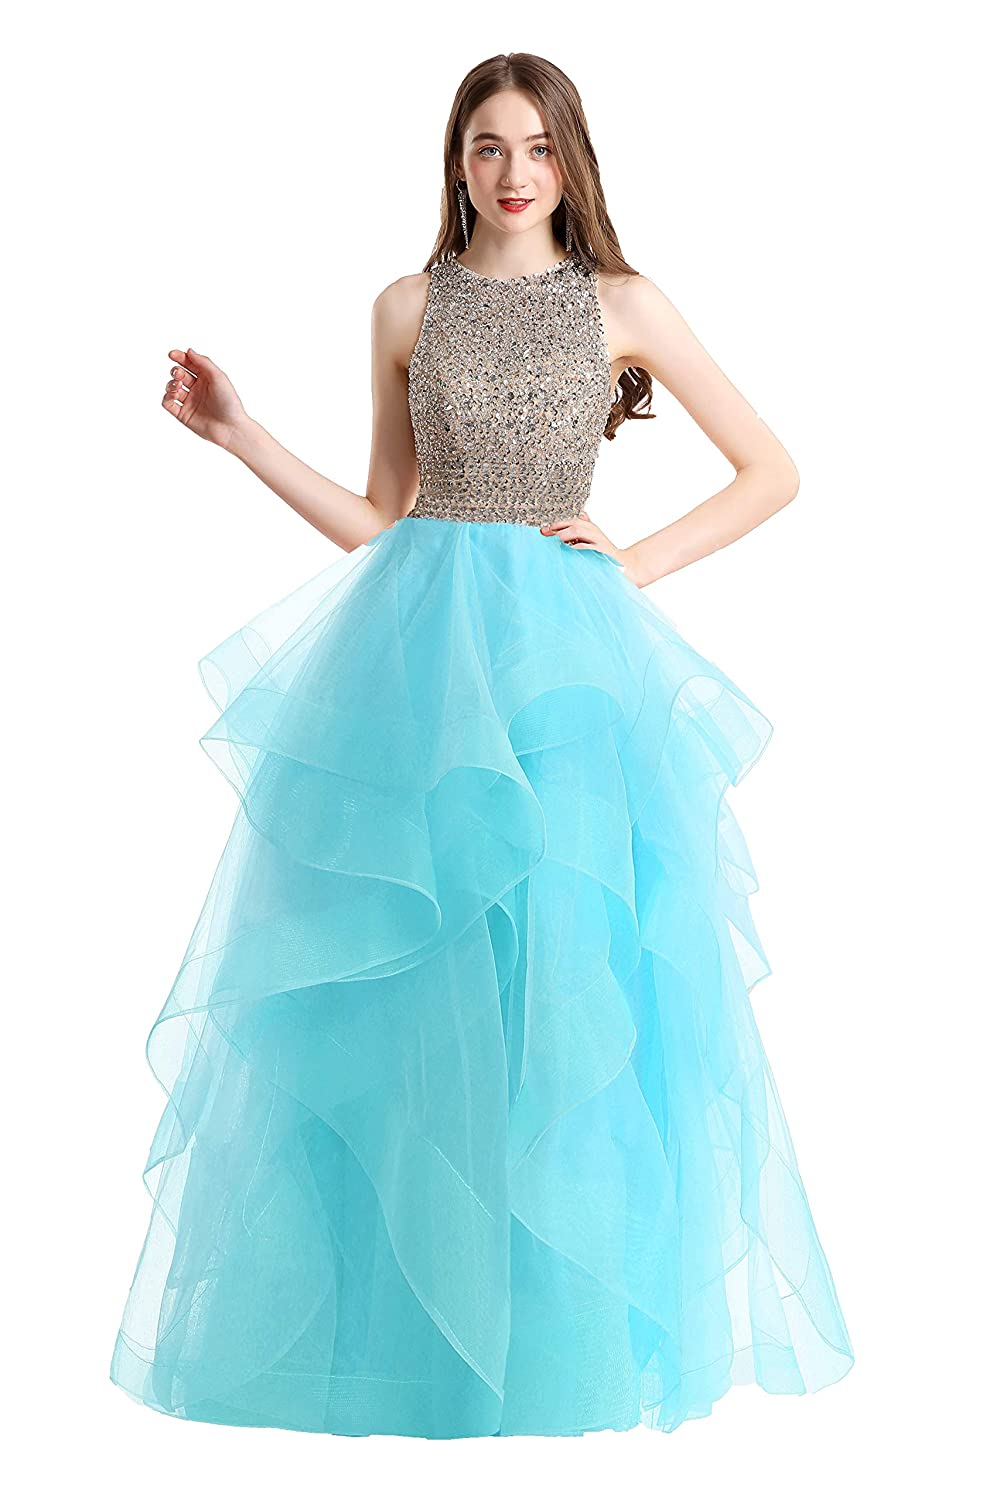 dd087d5549 Amazon.com  Bonnie Gorgeous Beaded Bodice Prom Dresses Long 2 Piece Sexy  Open Back Ball Gowns BS005  Clothing